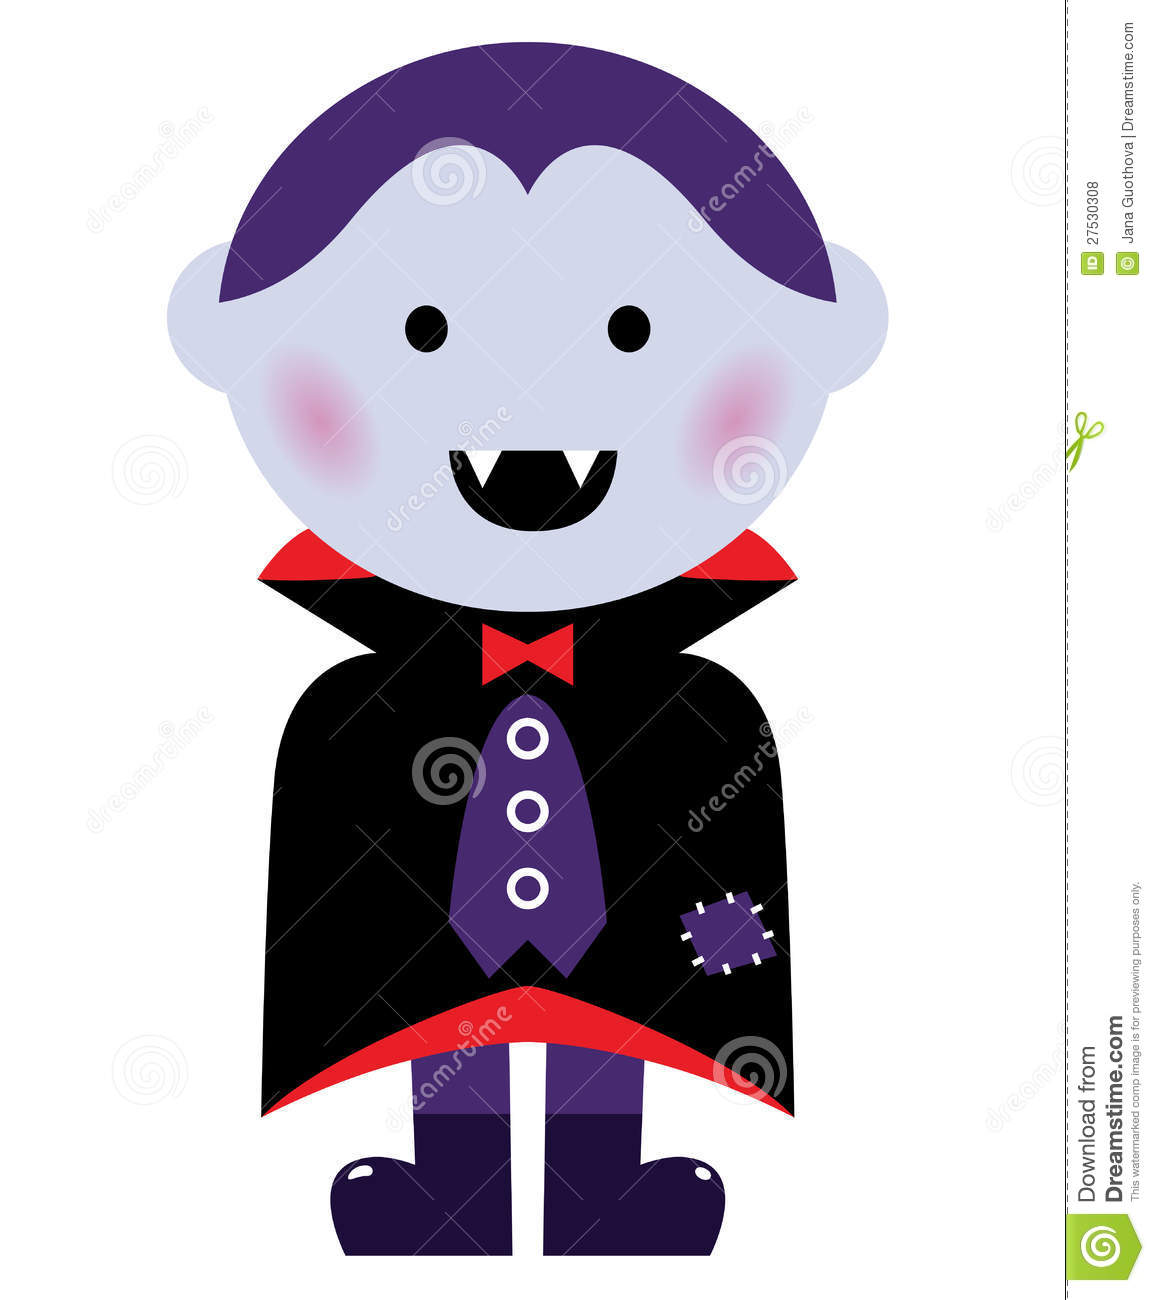 Cute Vampire Boy Royalty Free Stock Photos - Image: 27530308